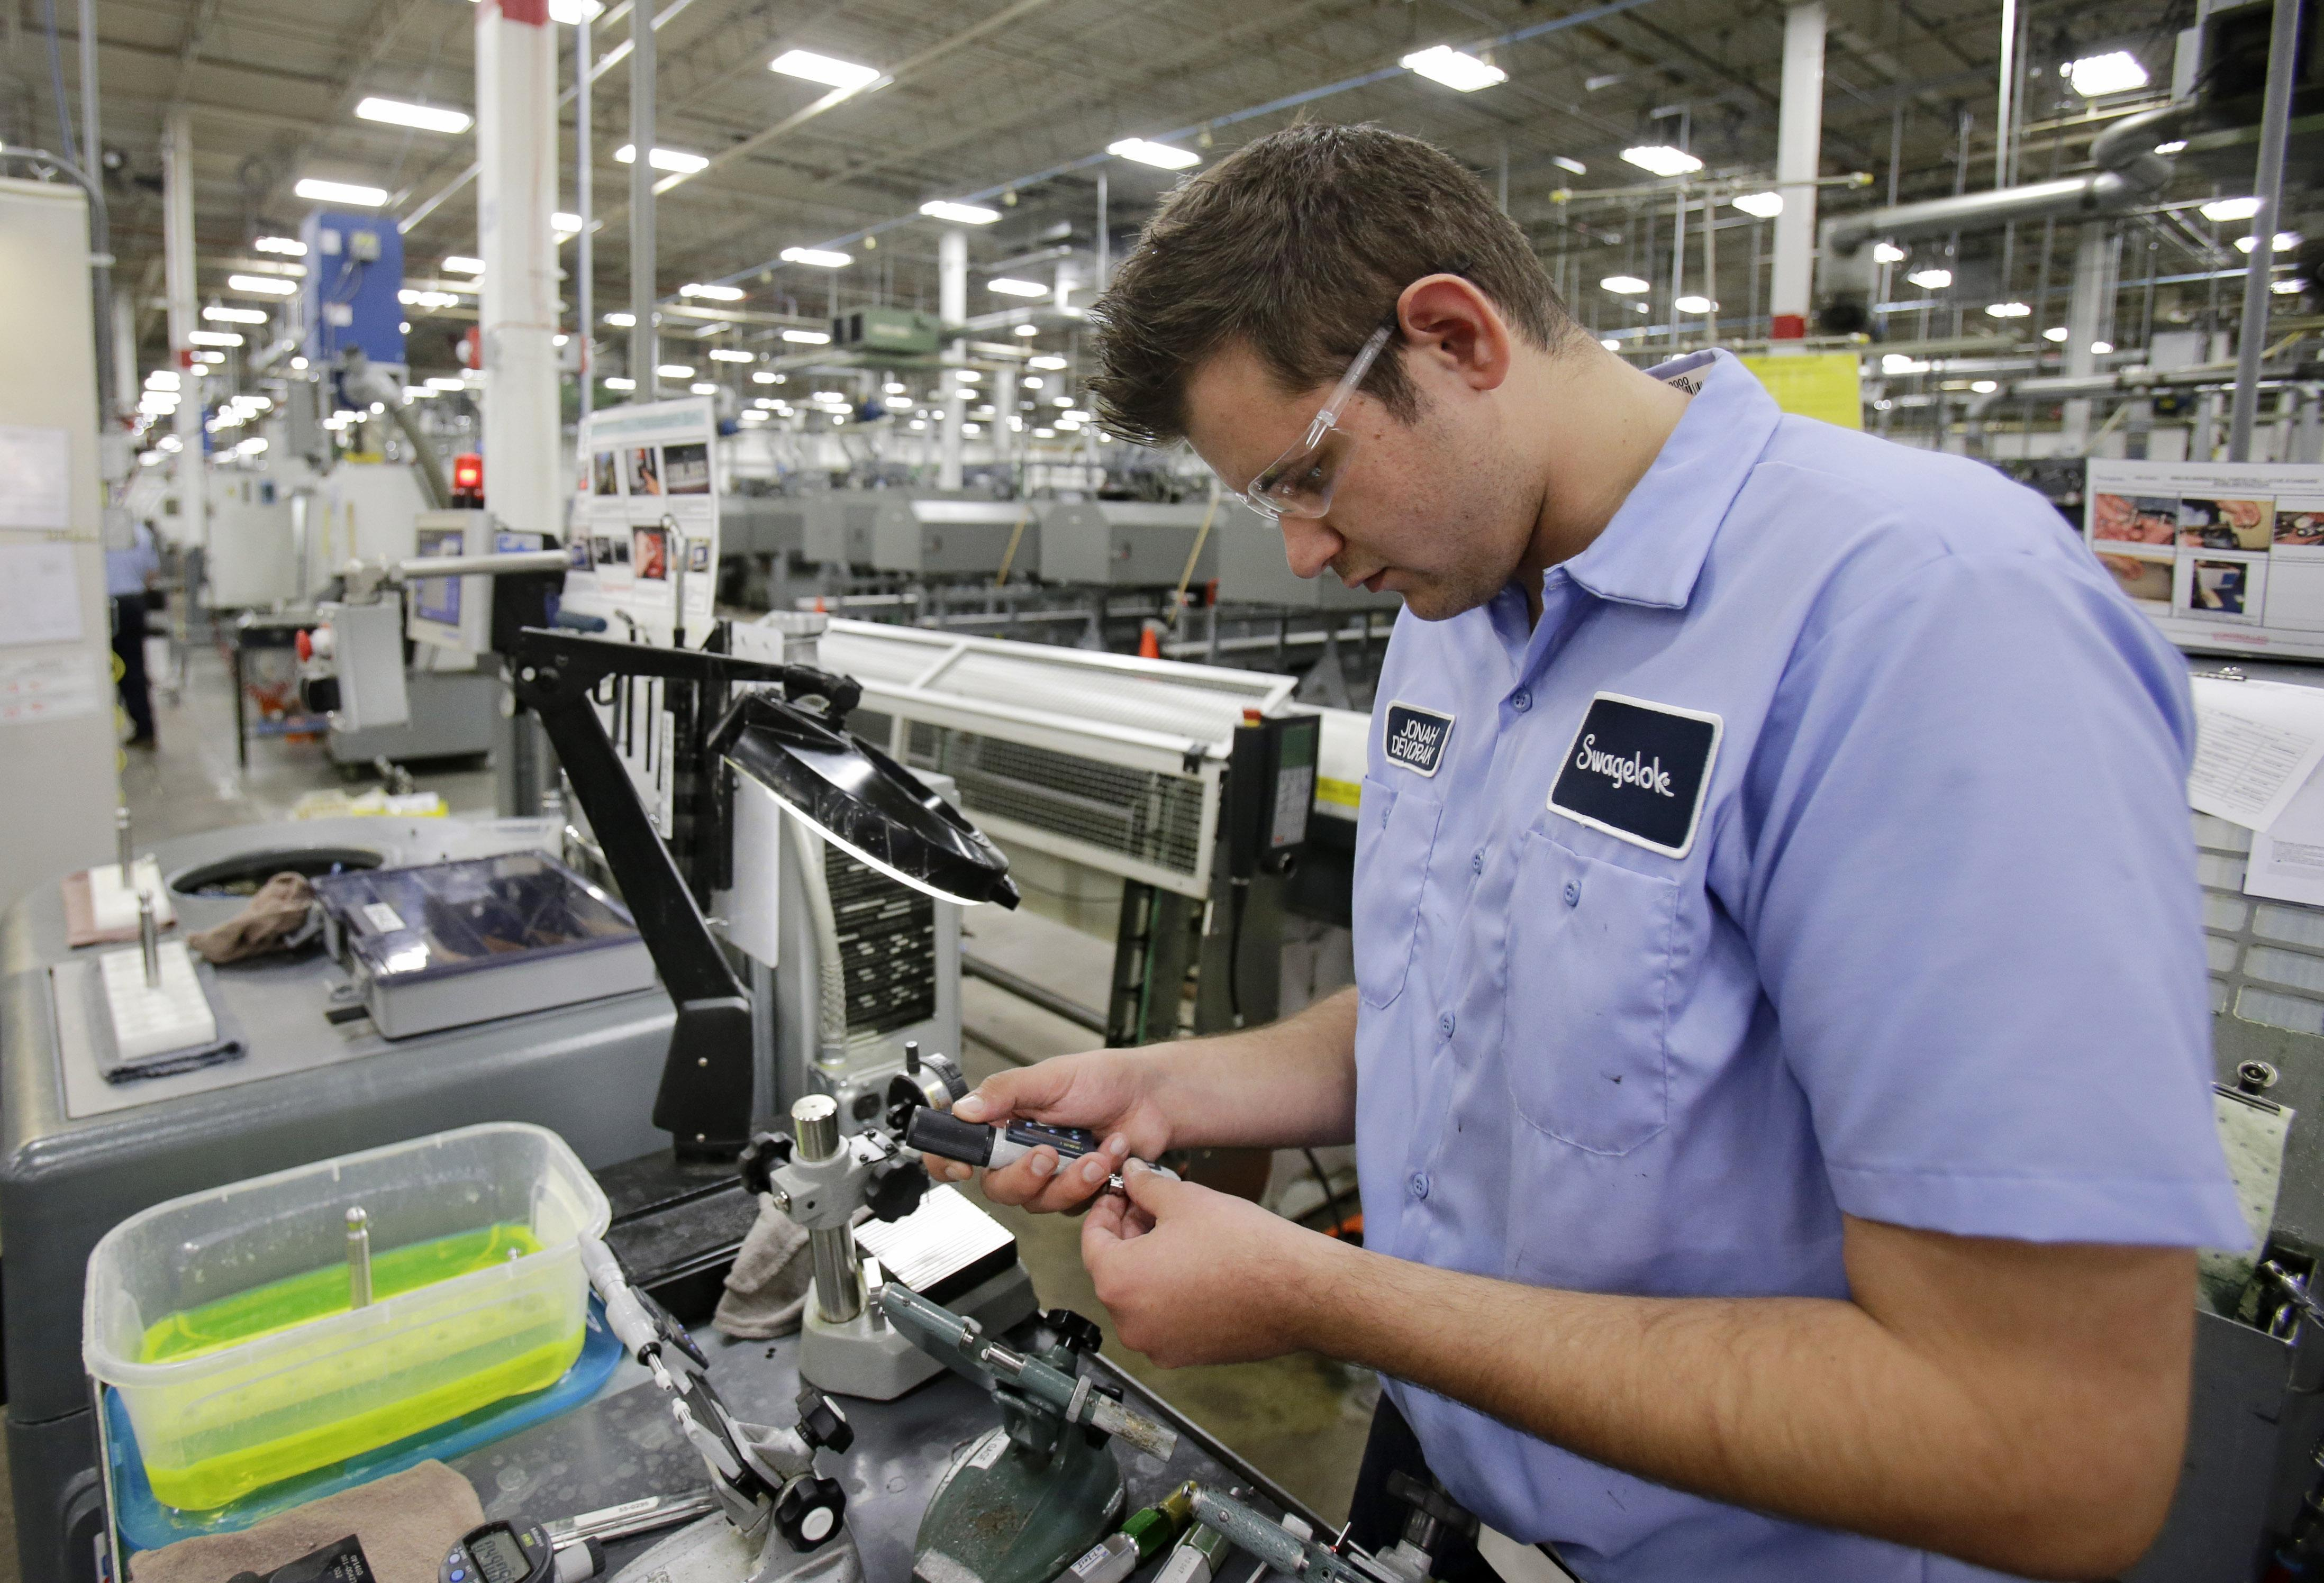 manufacturing in ohio seeing slow steady growth washington times